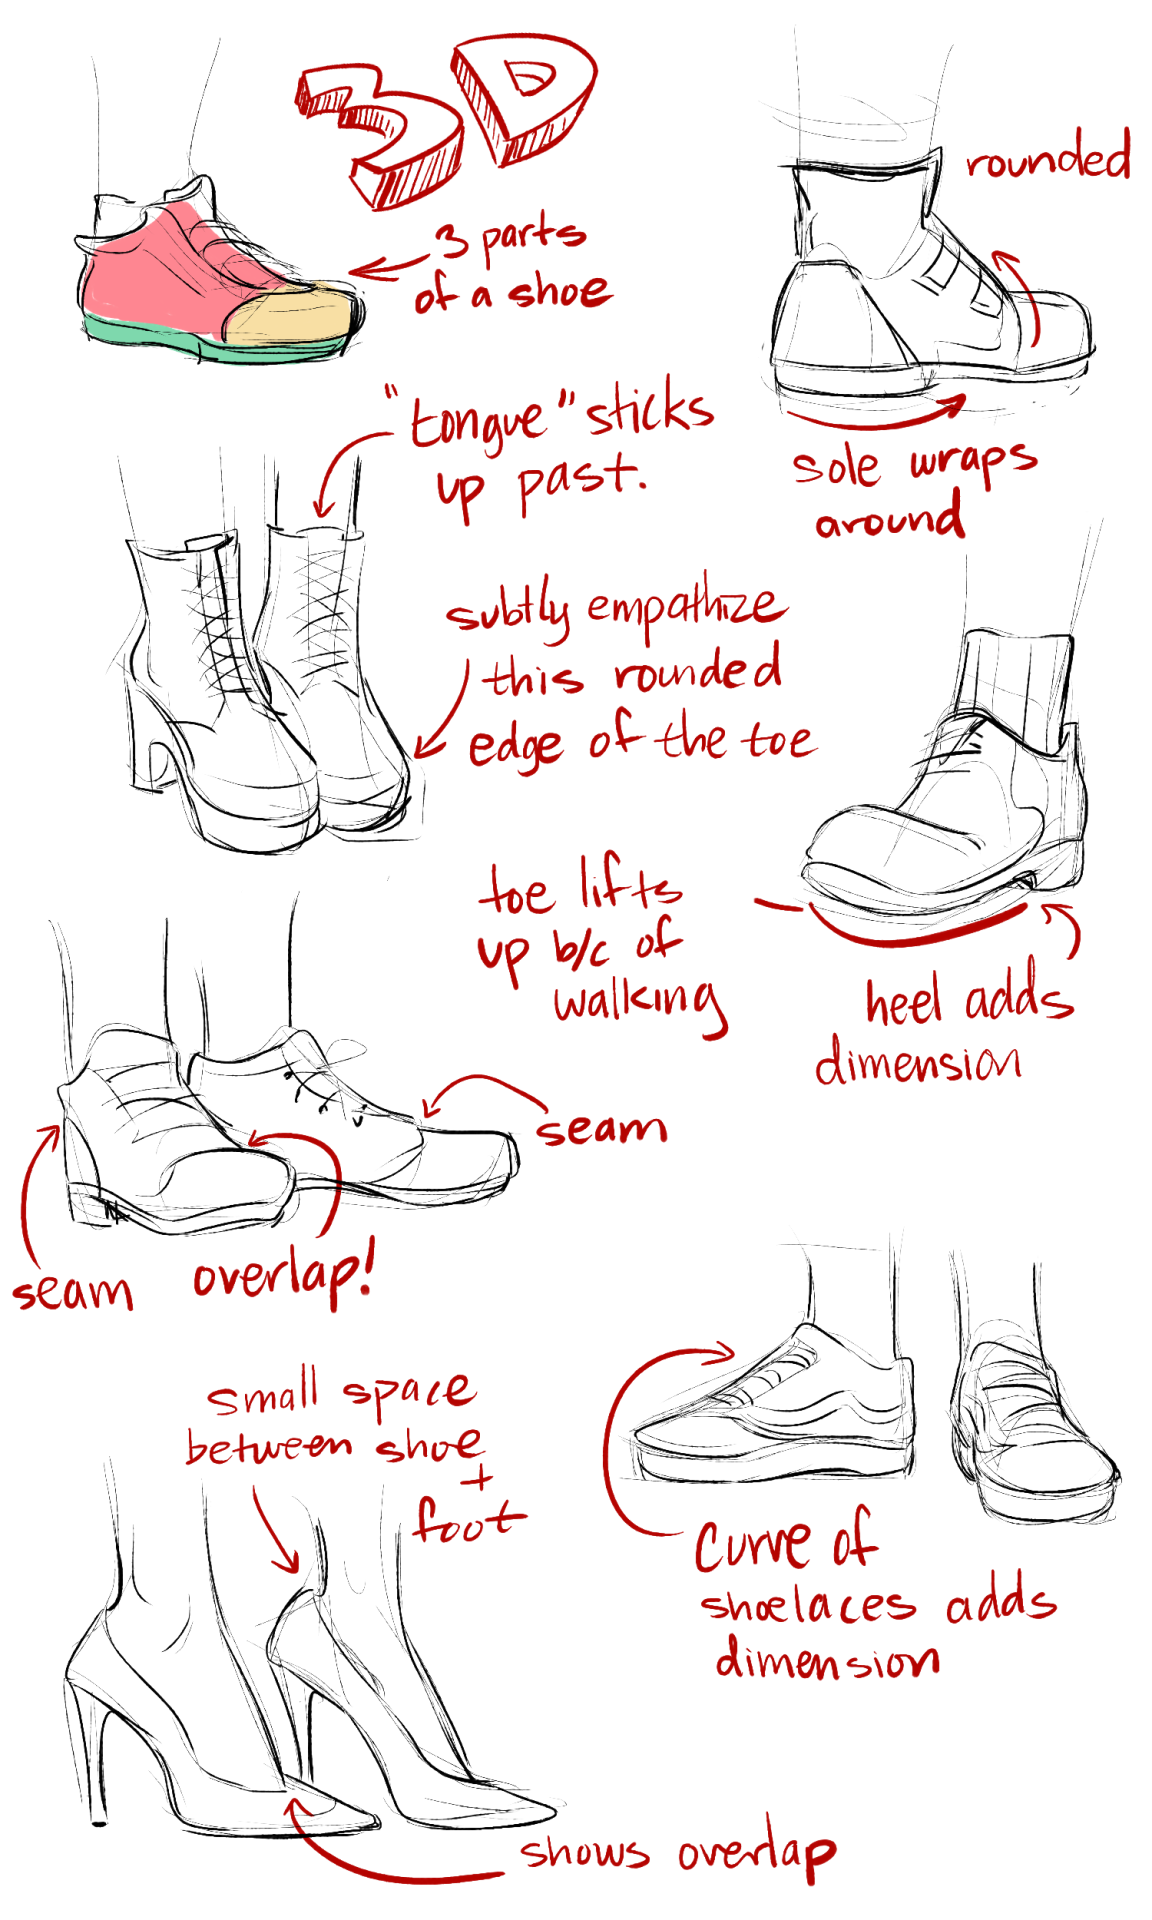 #references #feetshoes #redline #station #drawing #have #the #you #any #for #doThe Redline Station — Do you have any references for drawing feet/shoes...